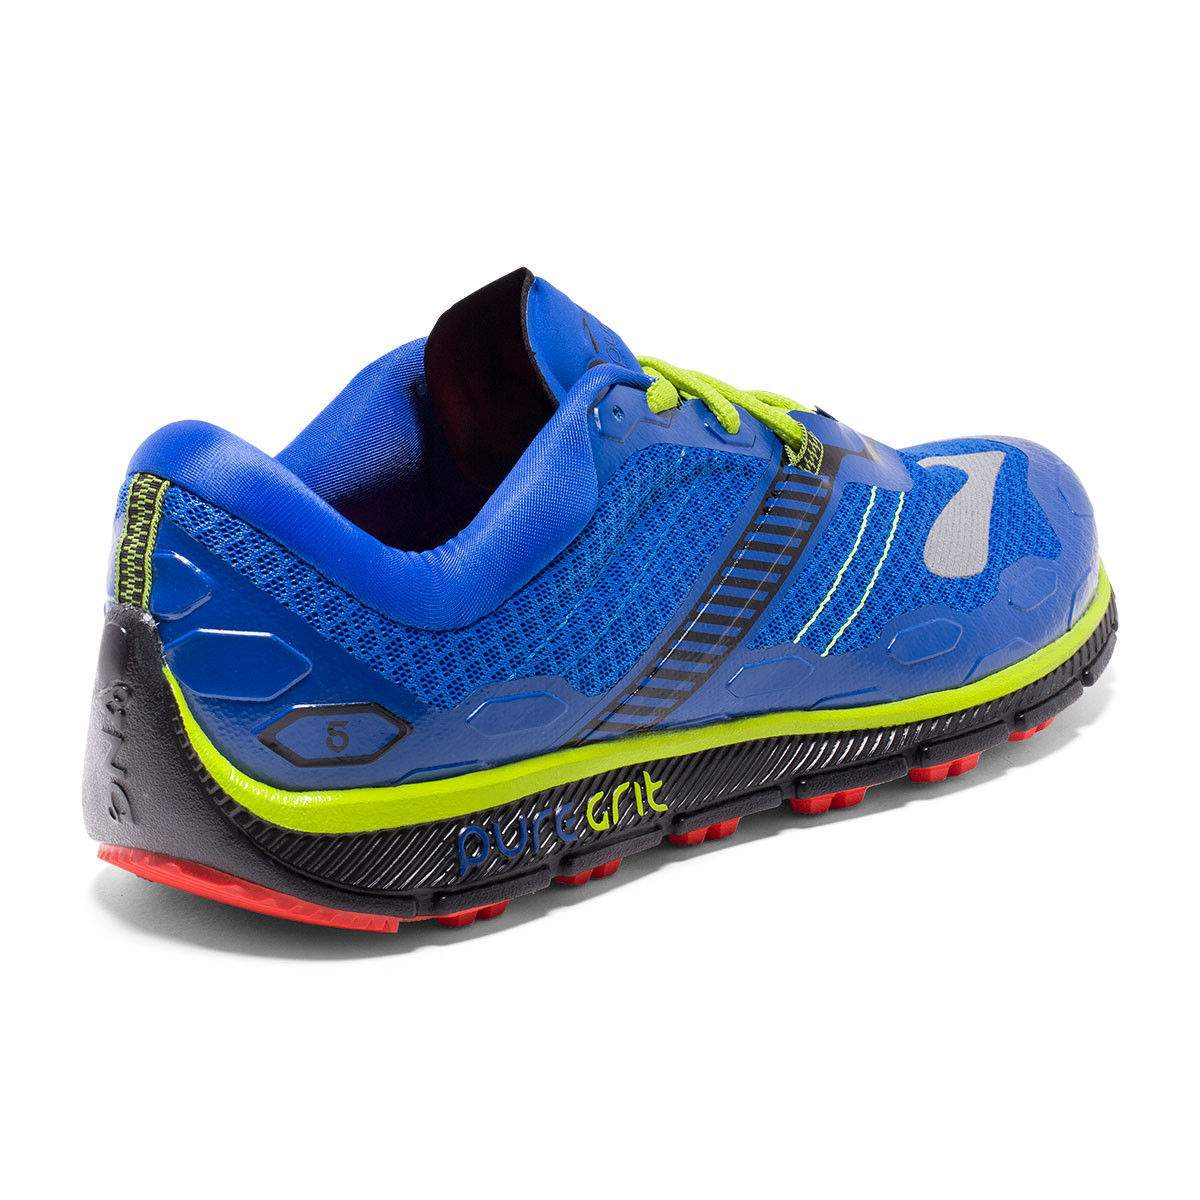 Brooks Pure Running Shoes Reviews